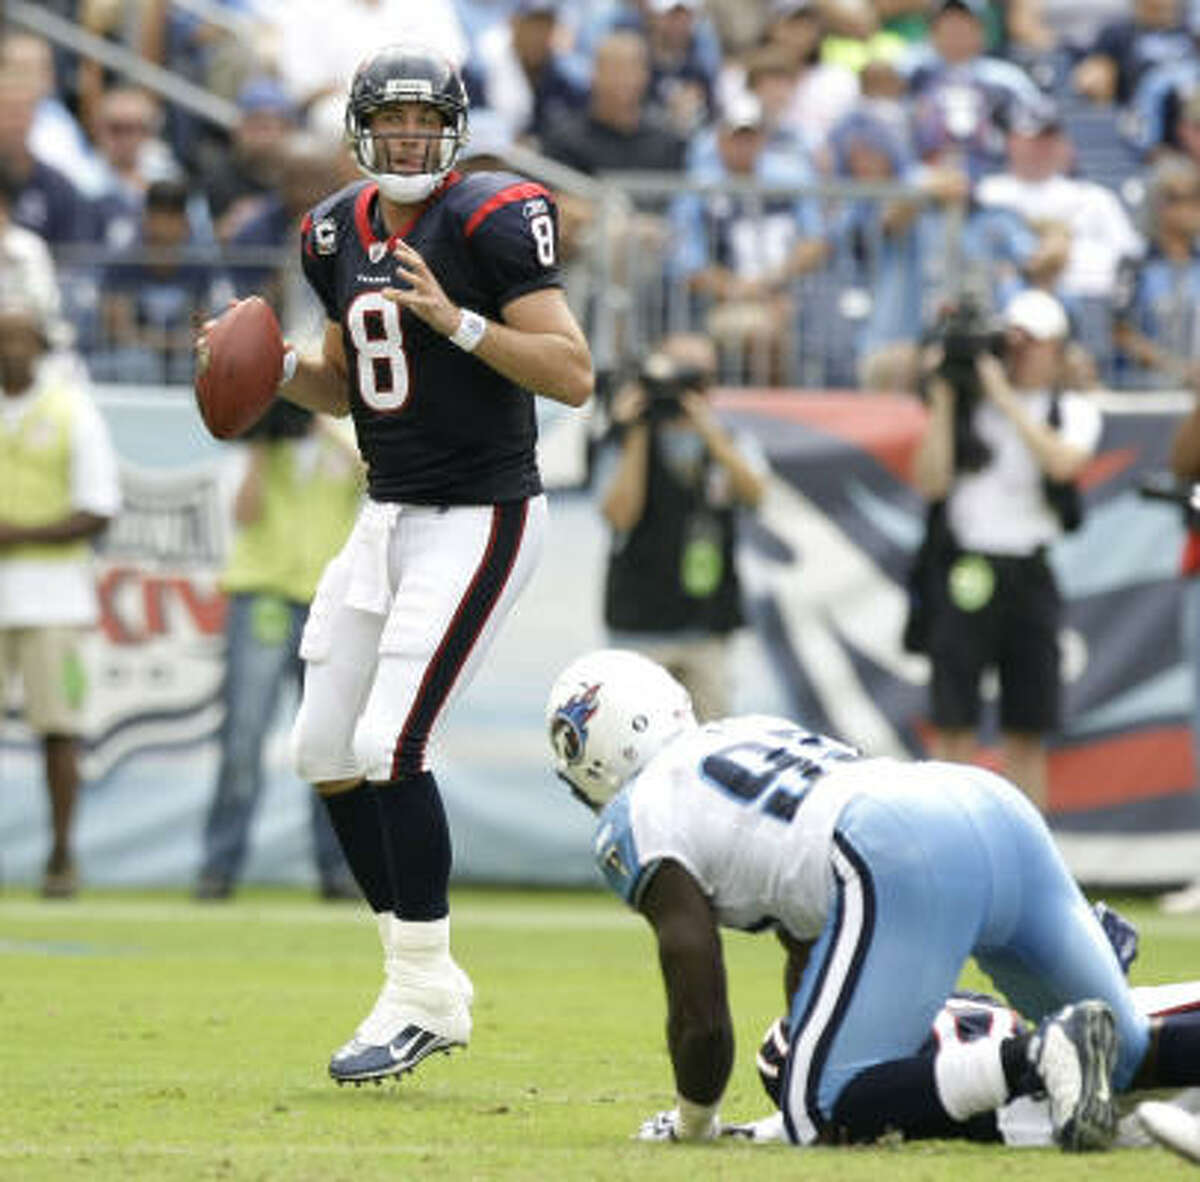 Quarterback Matt Schaub (pictured) was magnificent, going 25-of-39 for 357 yards, four touchdowns, no interceptions, no sacks and a 127.8 rating. A+